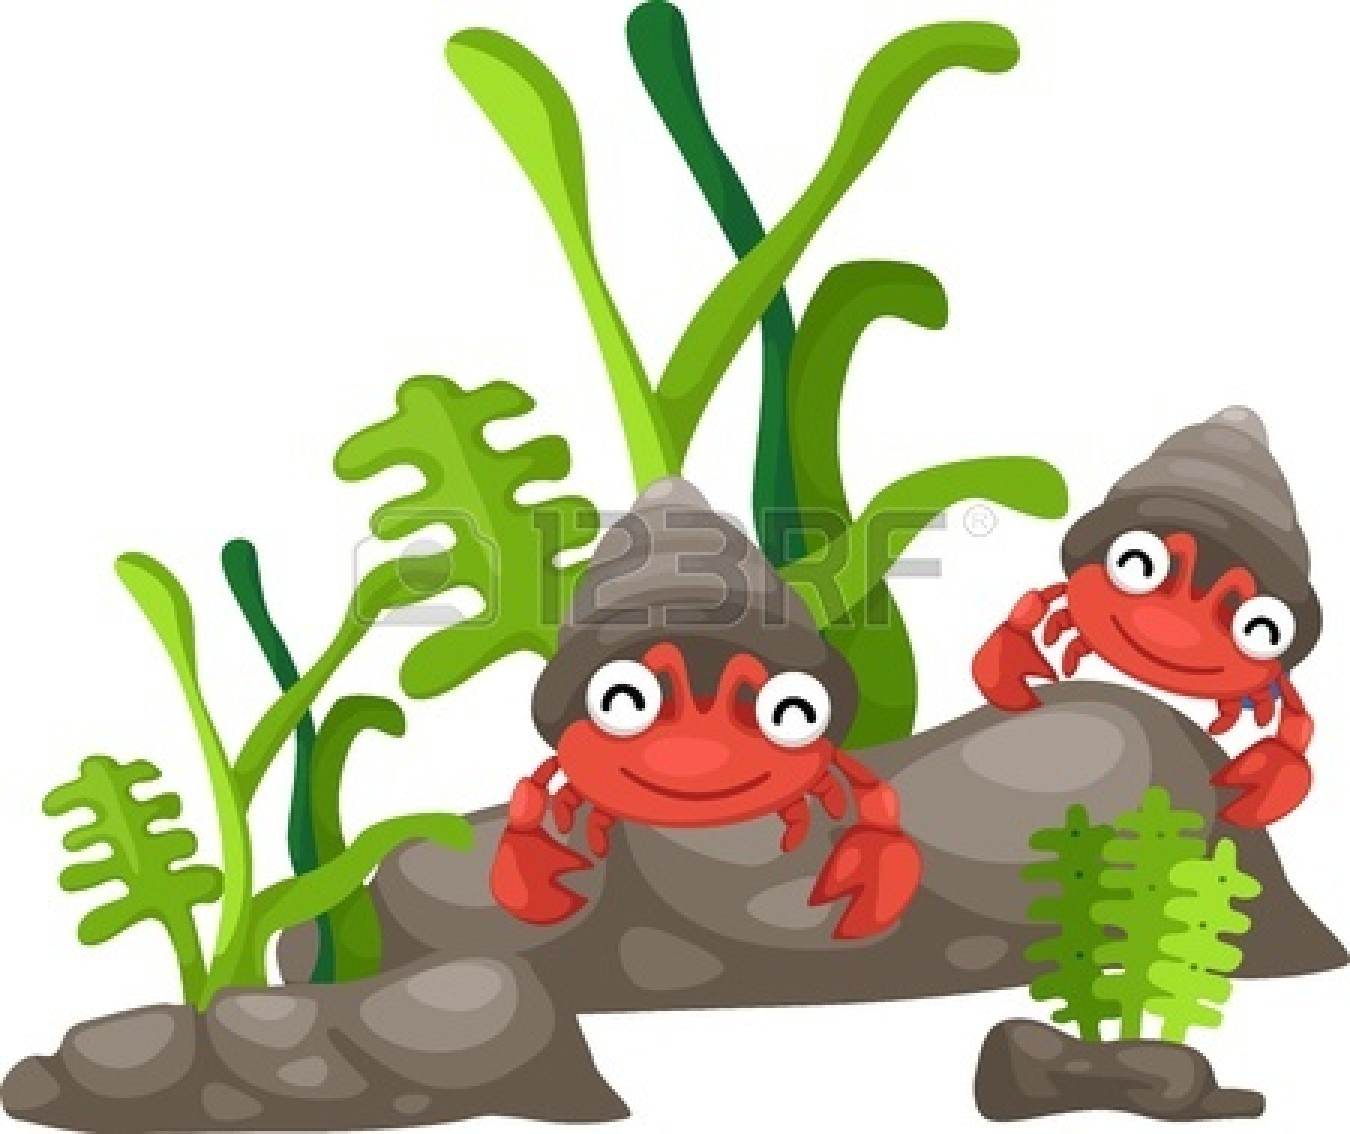 Hermit Crab Clipart Black And White | Clipart Panda - Free ...